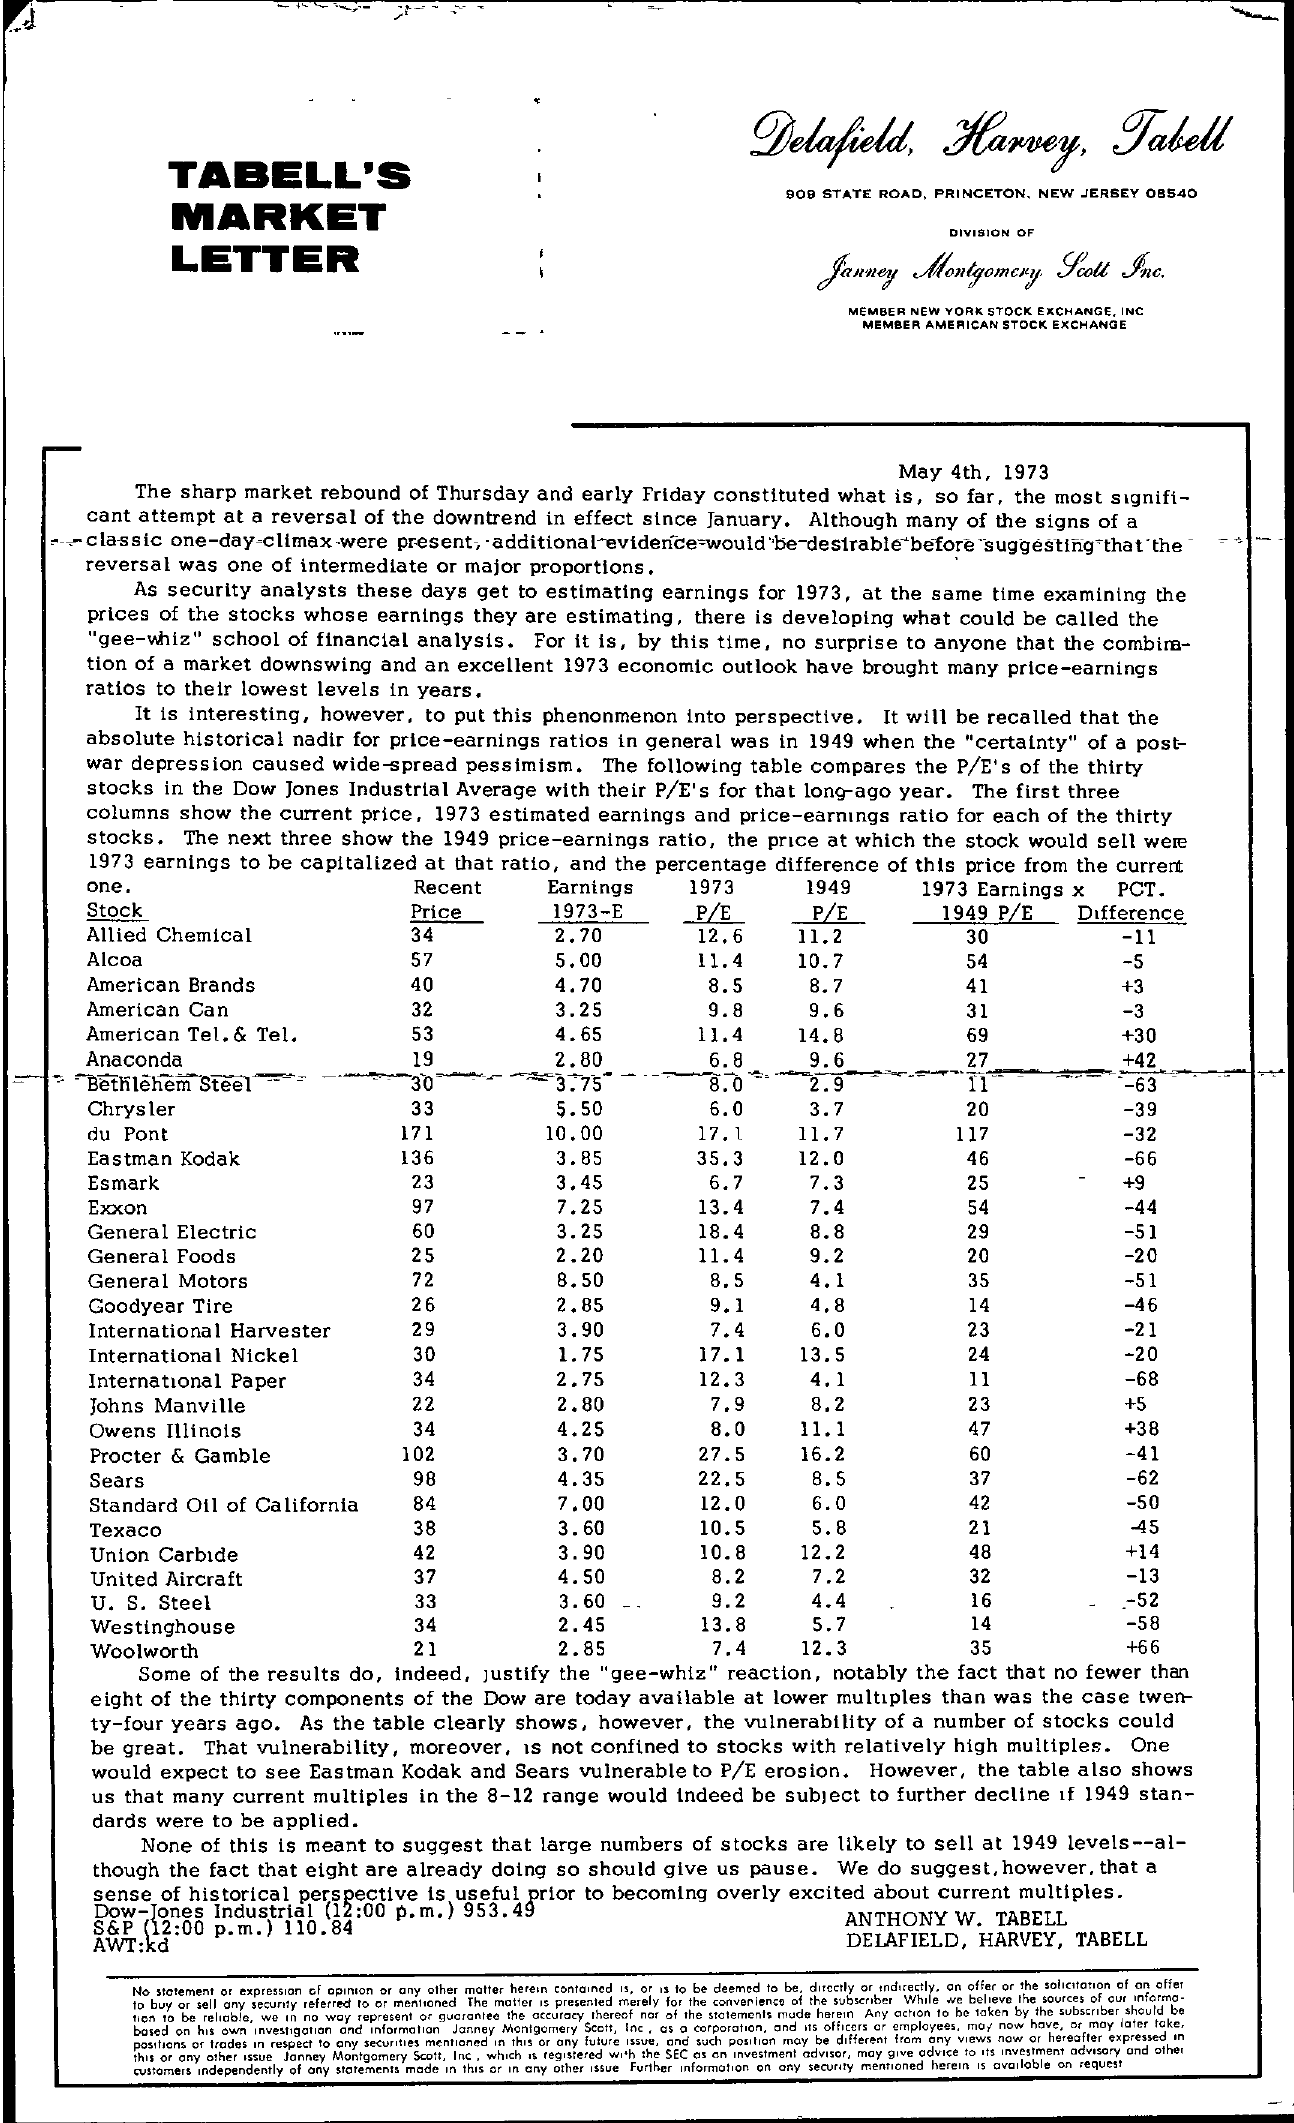 Tabell's Market Letter - May 04, 1973